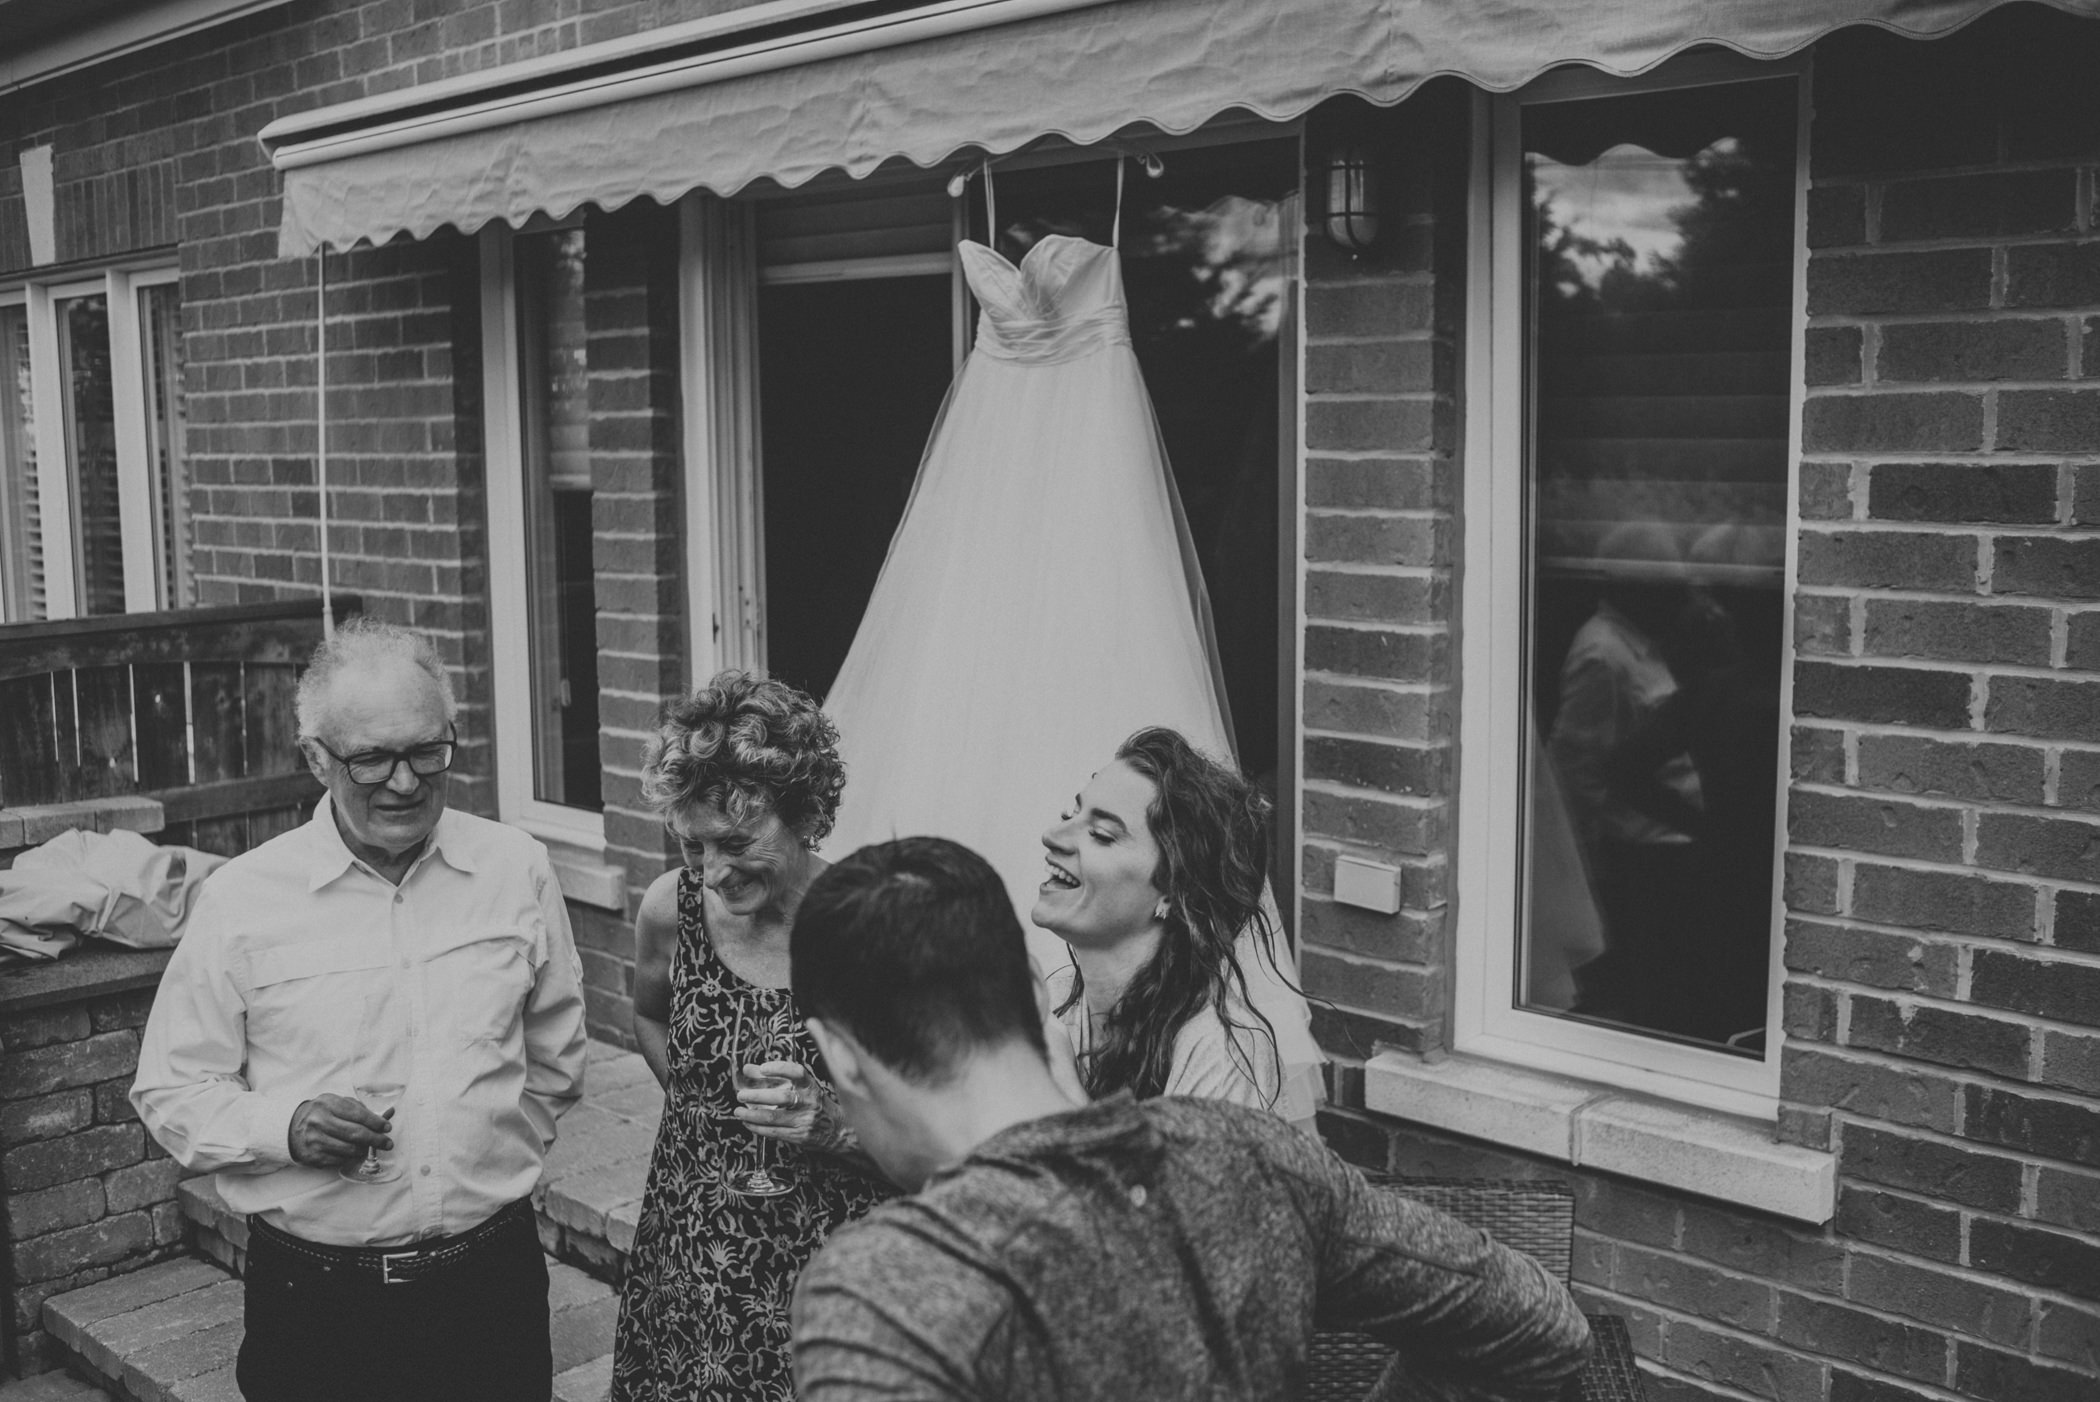 friends and family at backyard wedding, bride laughing with wet dress hanging.